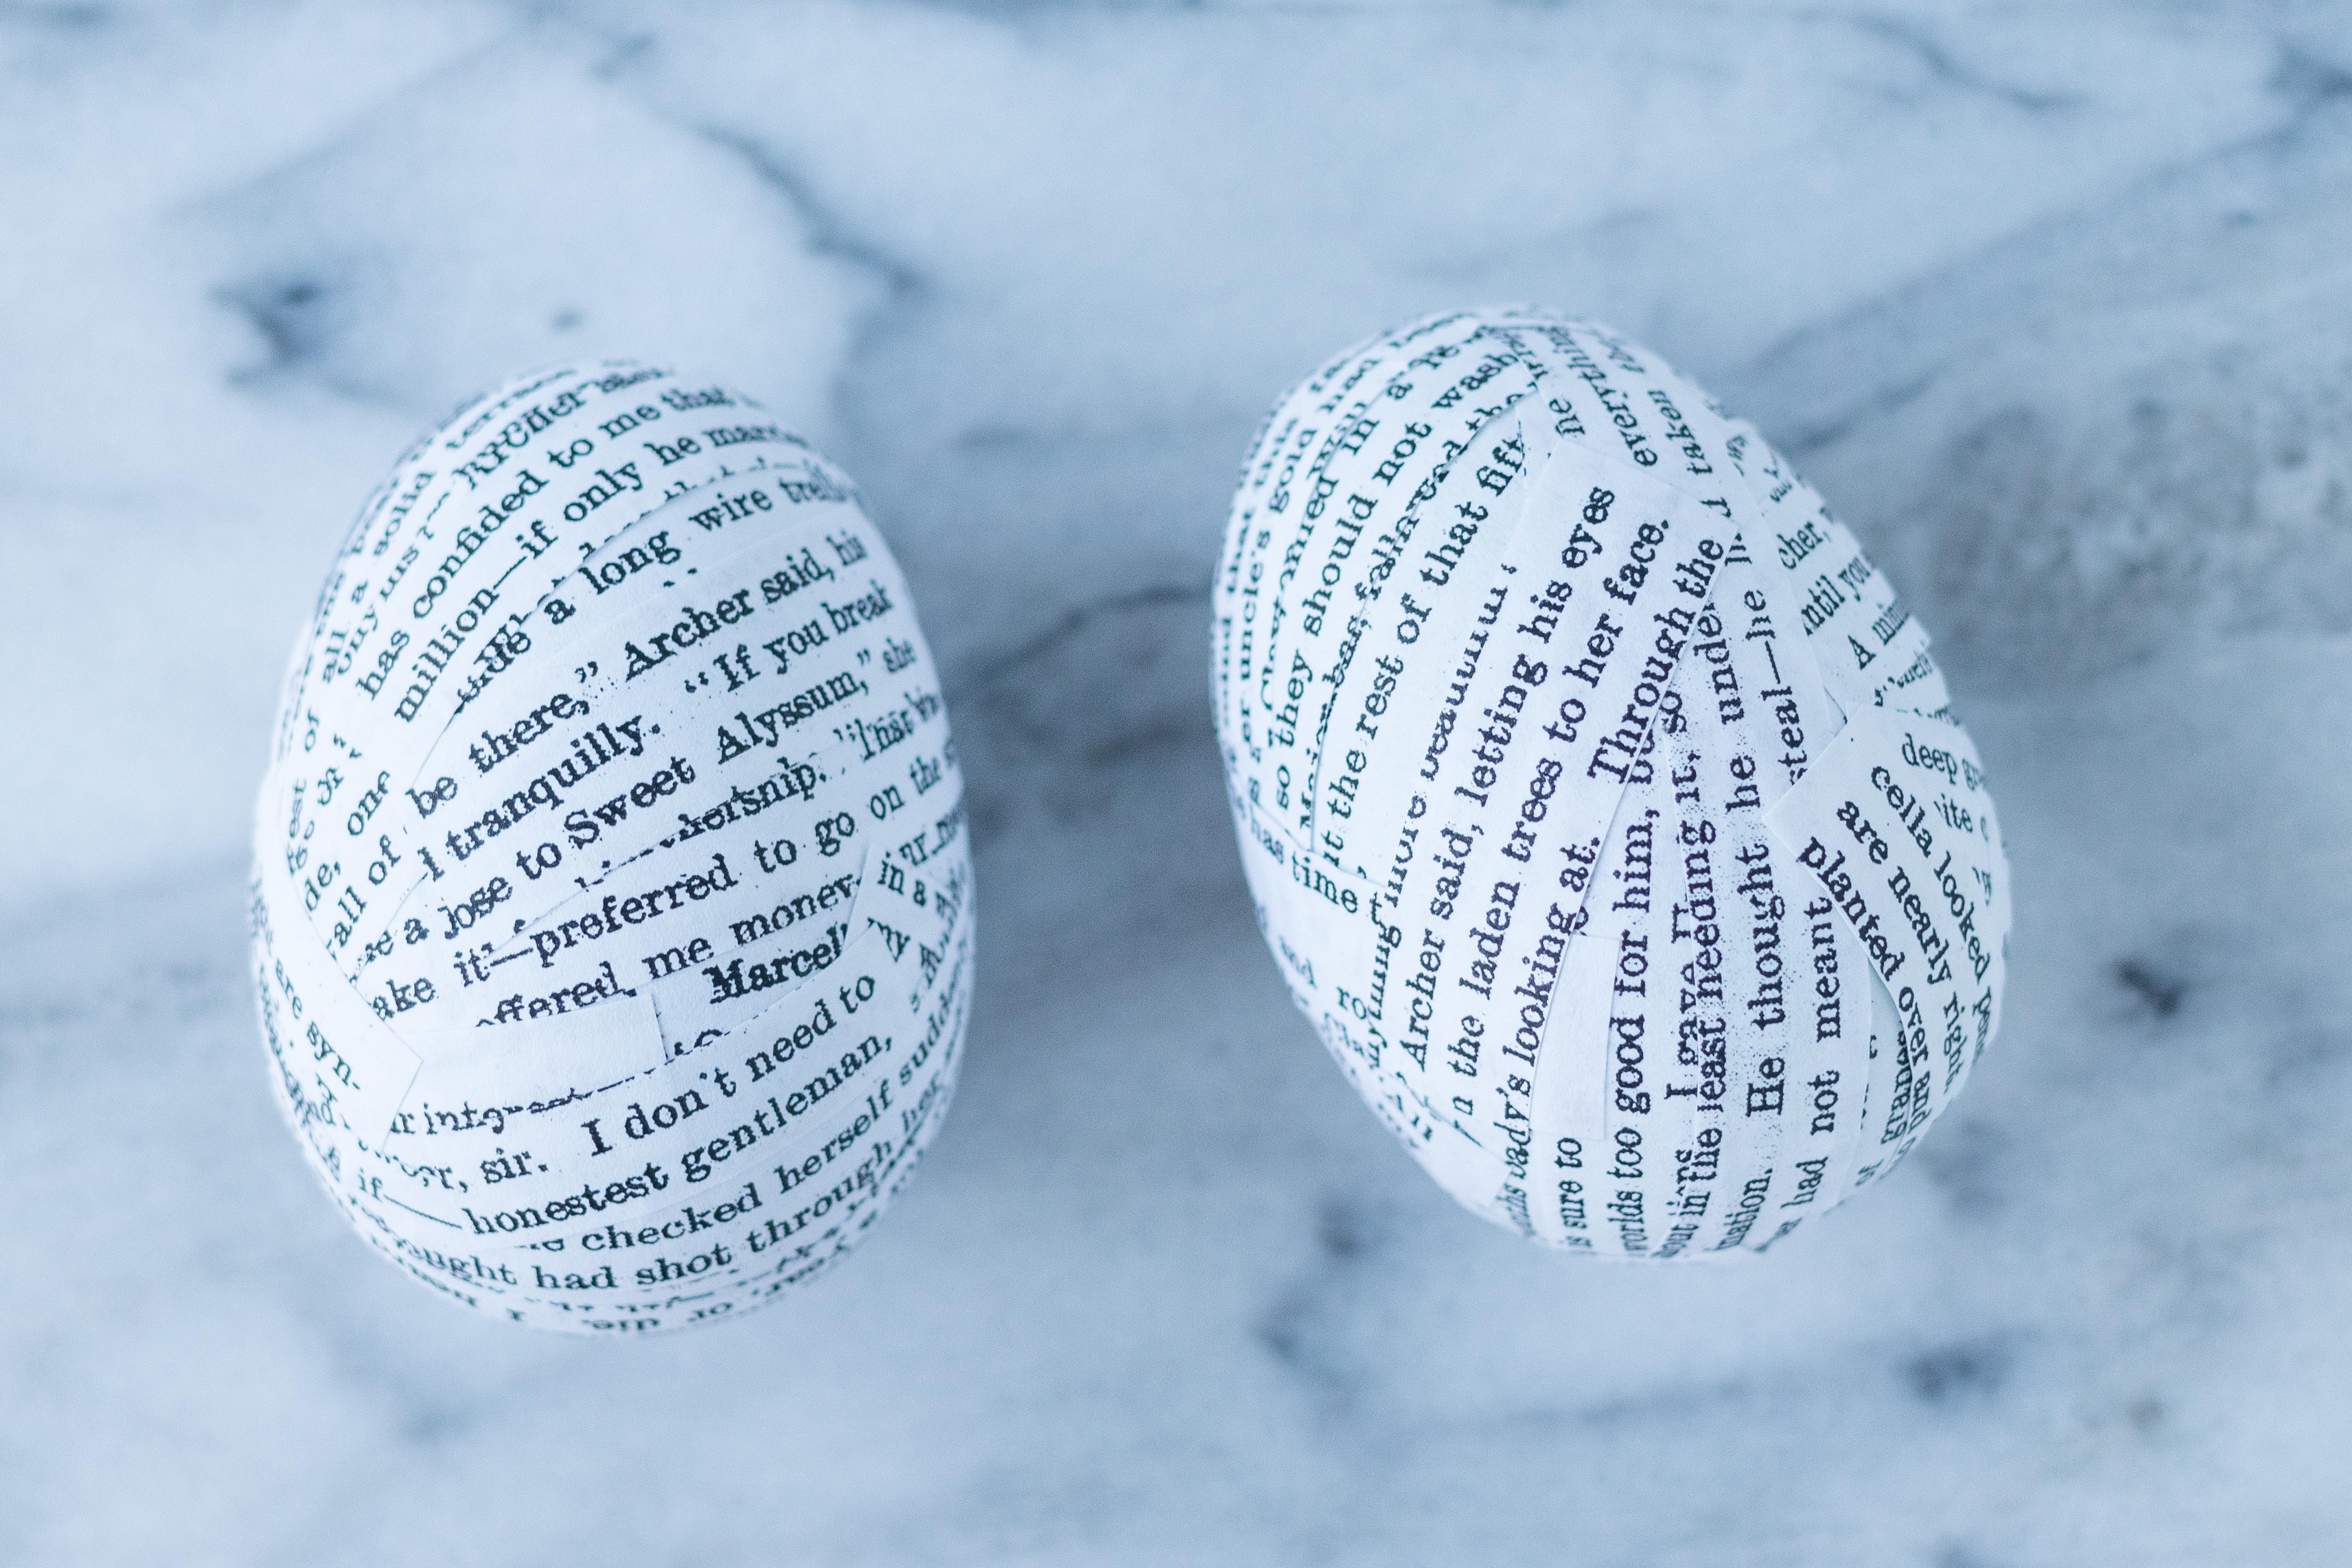 DIY Book Page Plastic Easter Eggs. A whimsical, upcycled Easter decorating idea that's fun for the whole family! #Easter #DIY #bookpagecrafts | https://www.roseclearfield.com